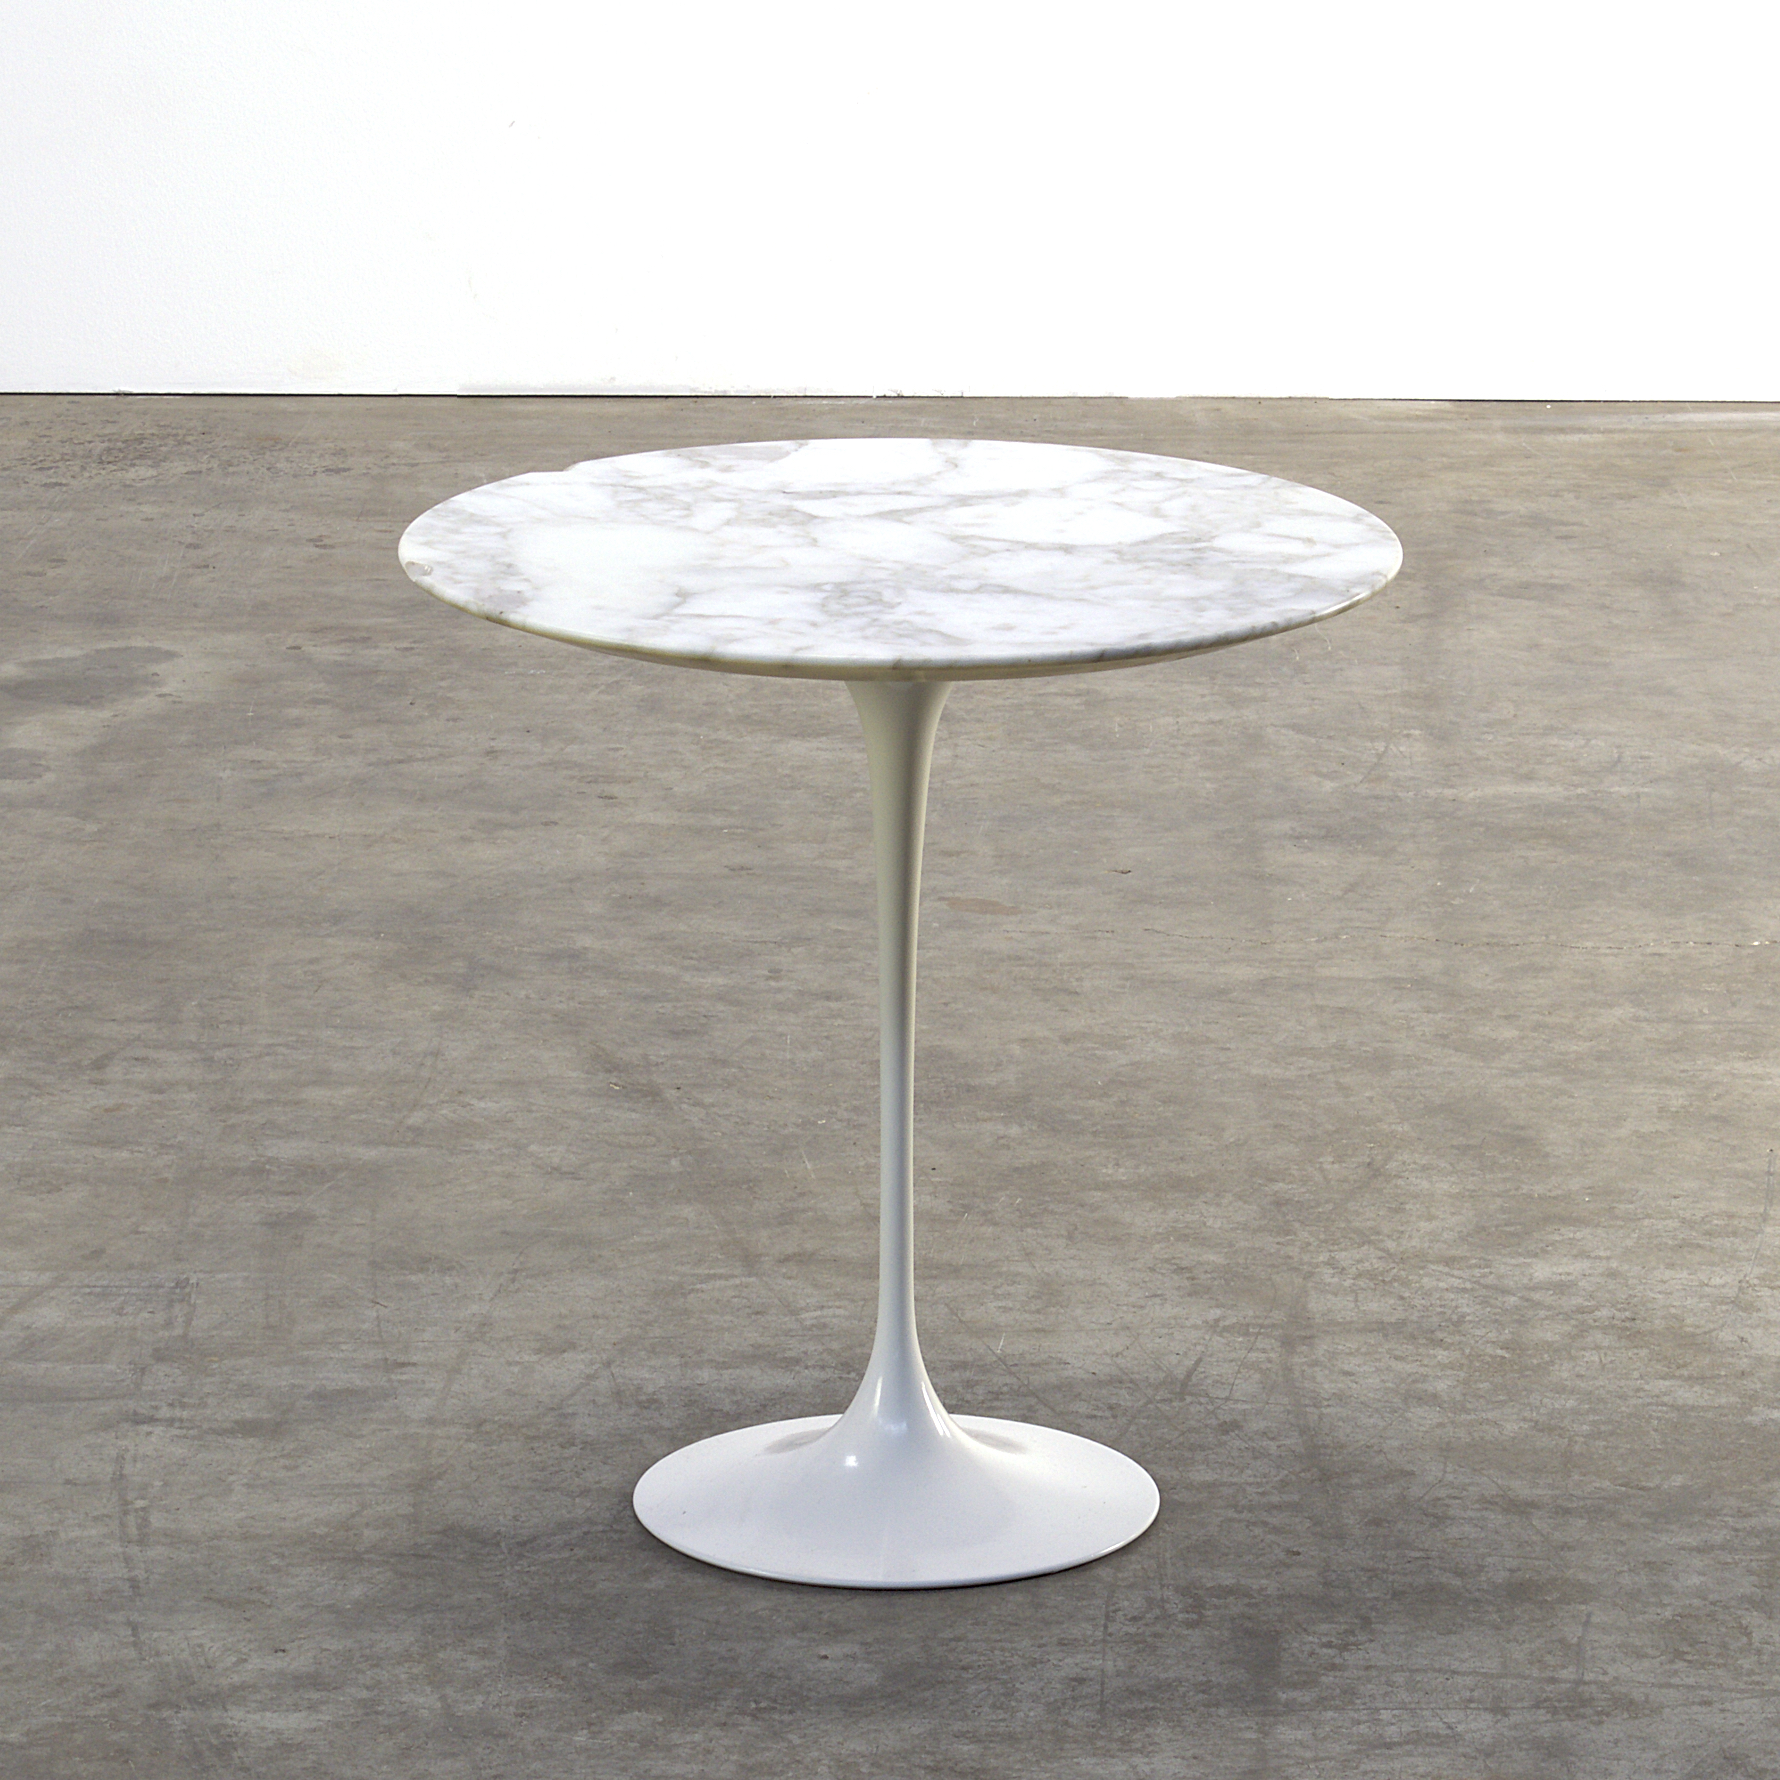 70 s eero saarinen tulip marble table for knoll barbmama. Black Bedroom Furniture Sets. Home Design Ideas